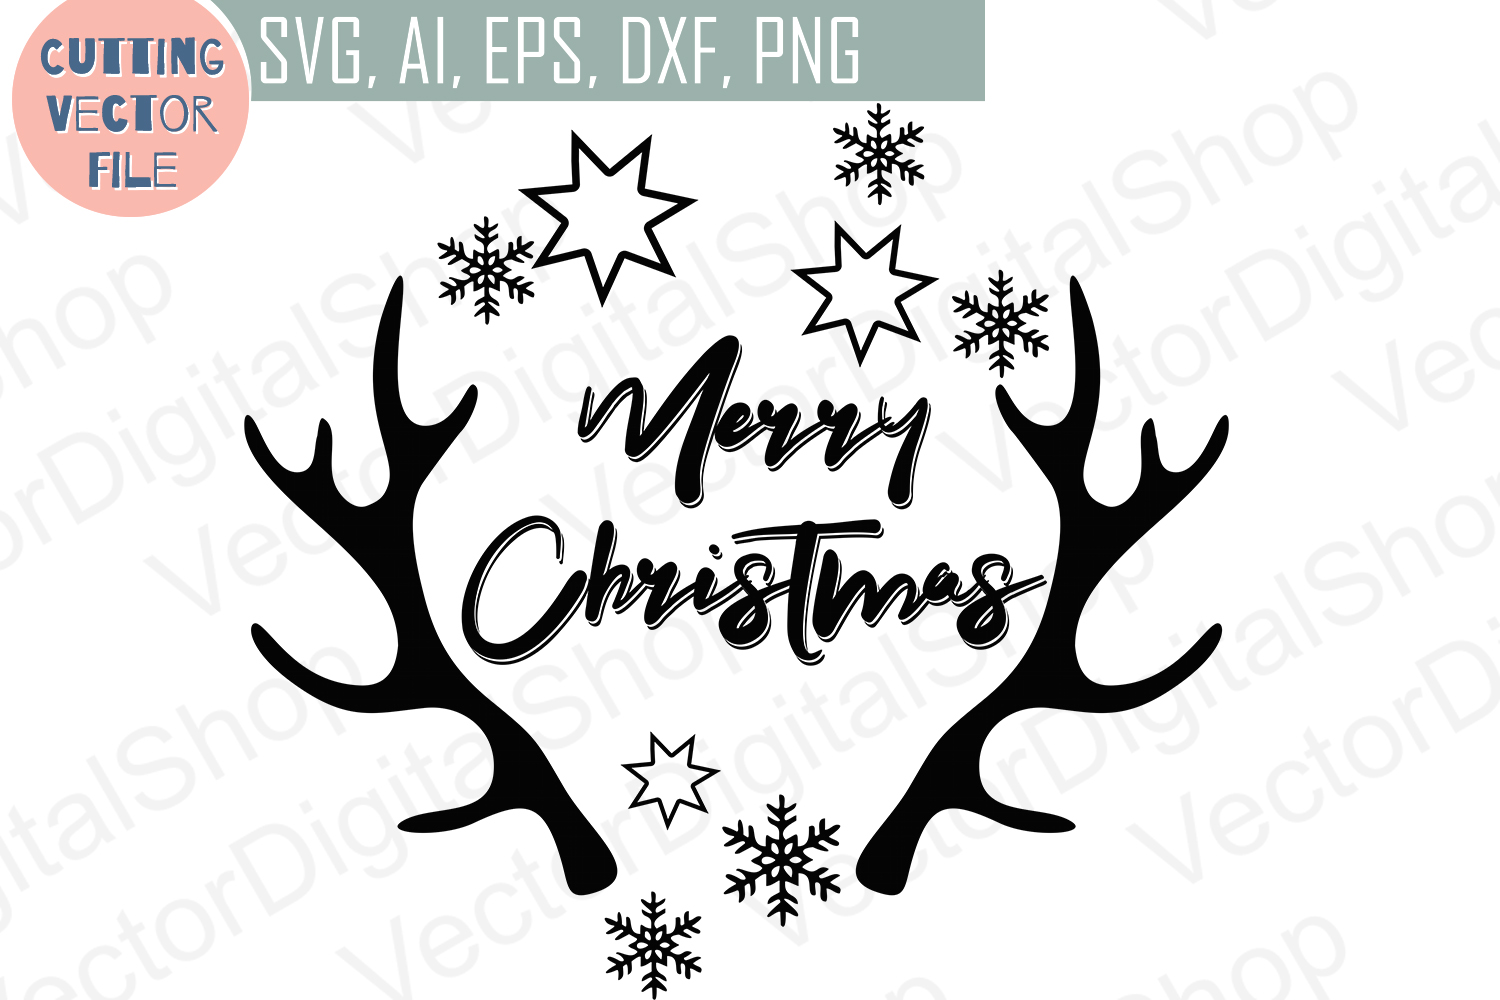 Merry Christmas Antlers SVG, deer, cutting files, Xmas Vector,  SVG, PNG, JPG, EPS, AI, DXF example image 2